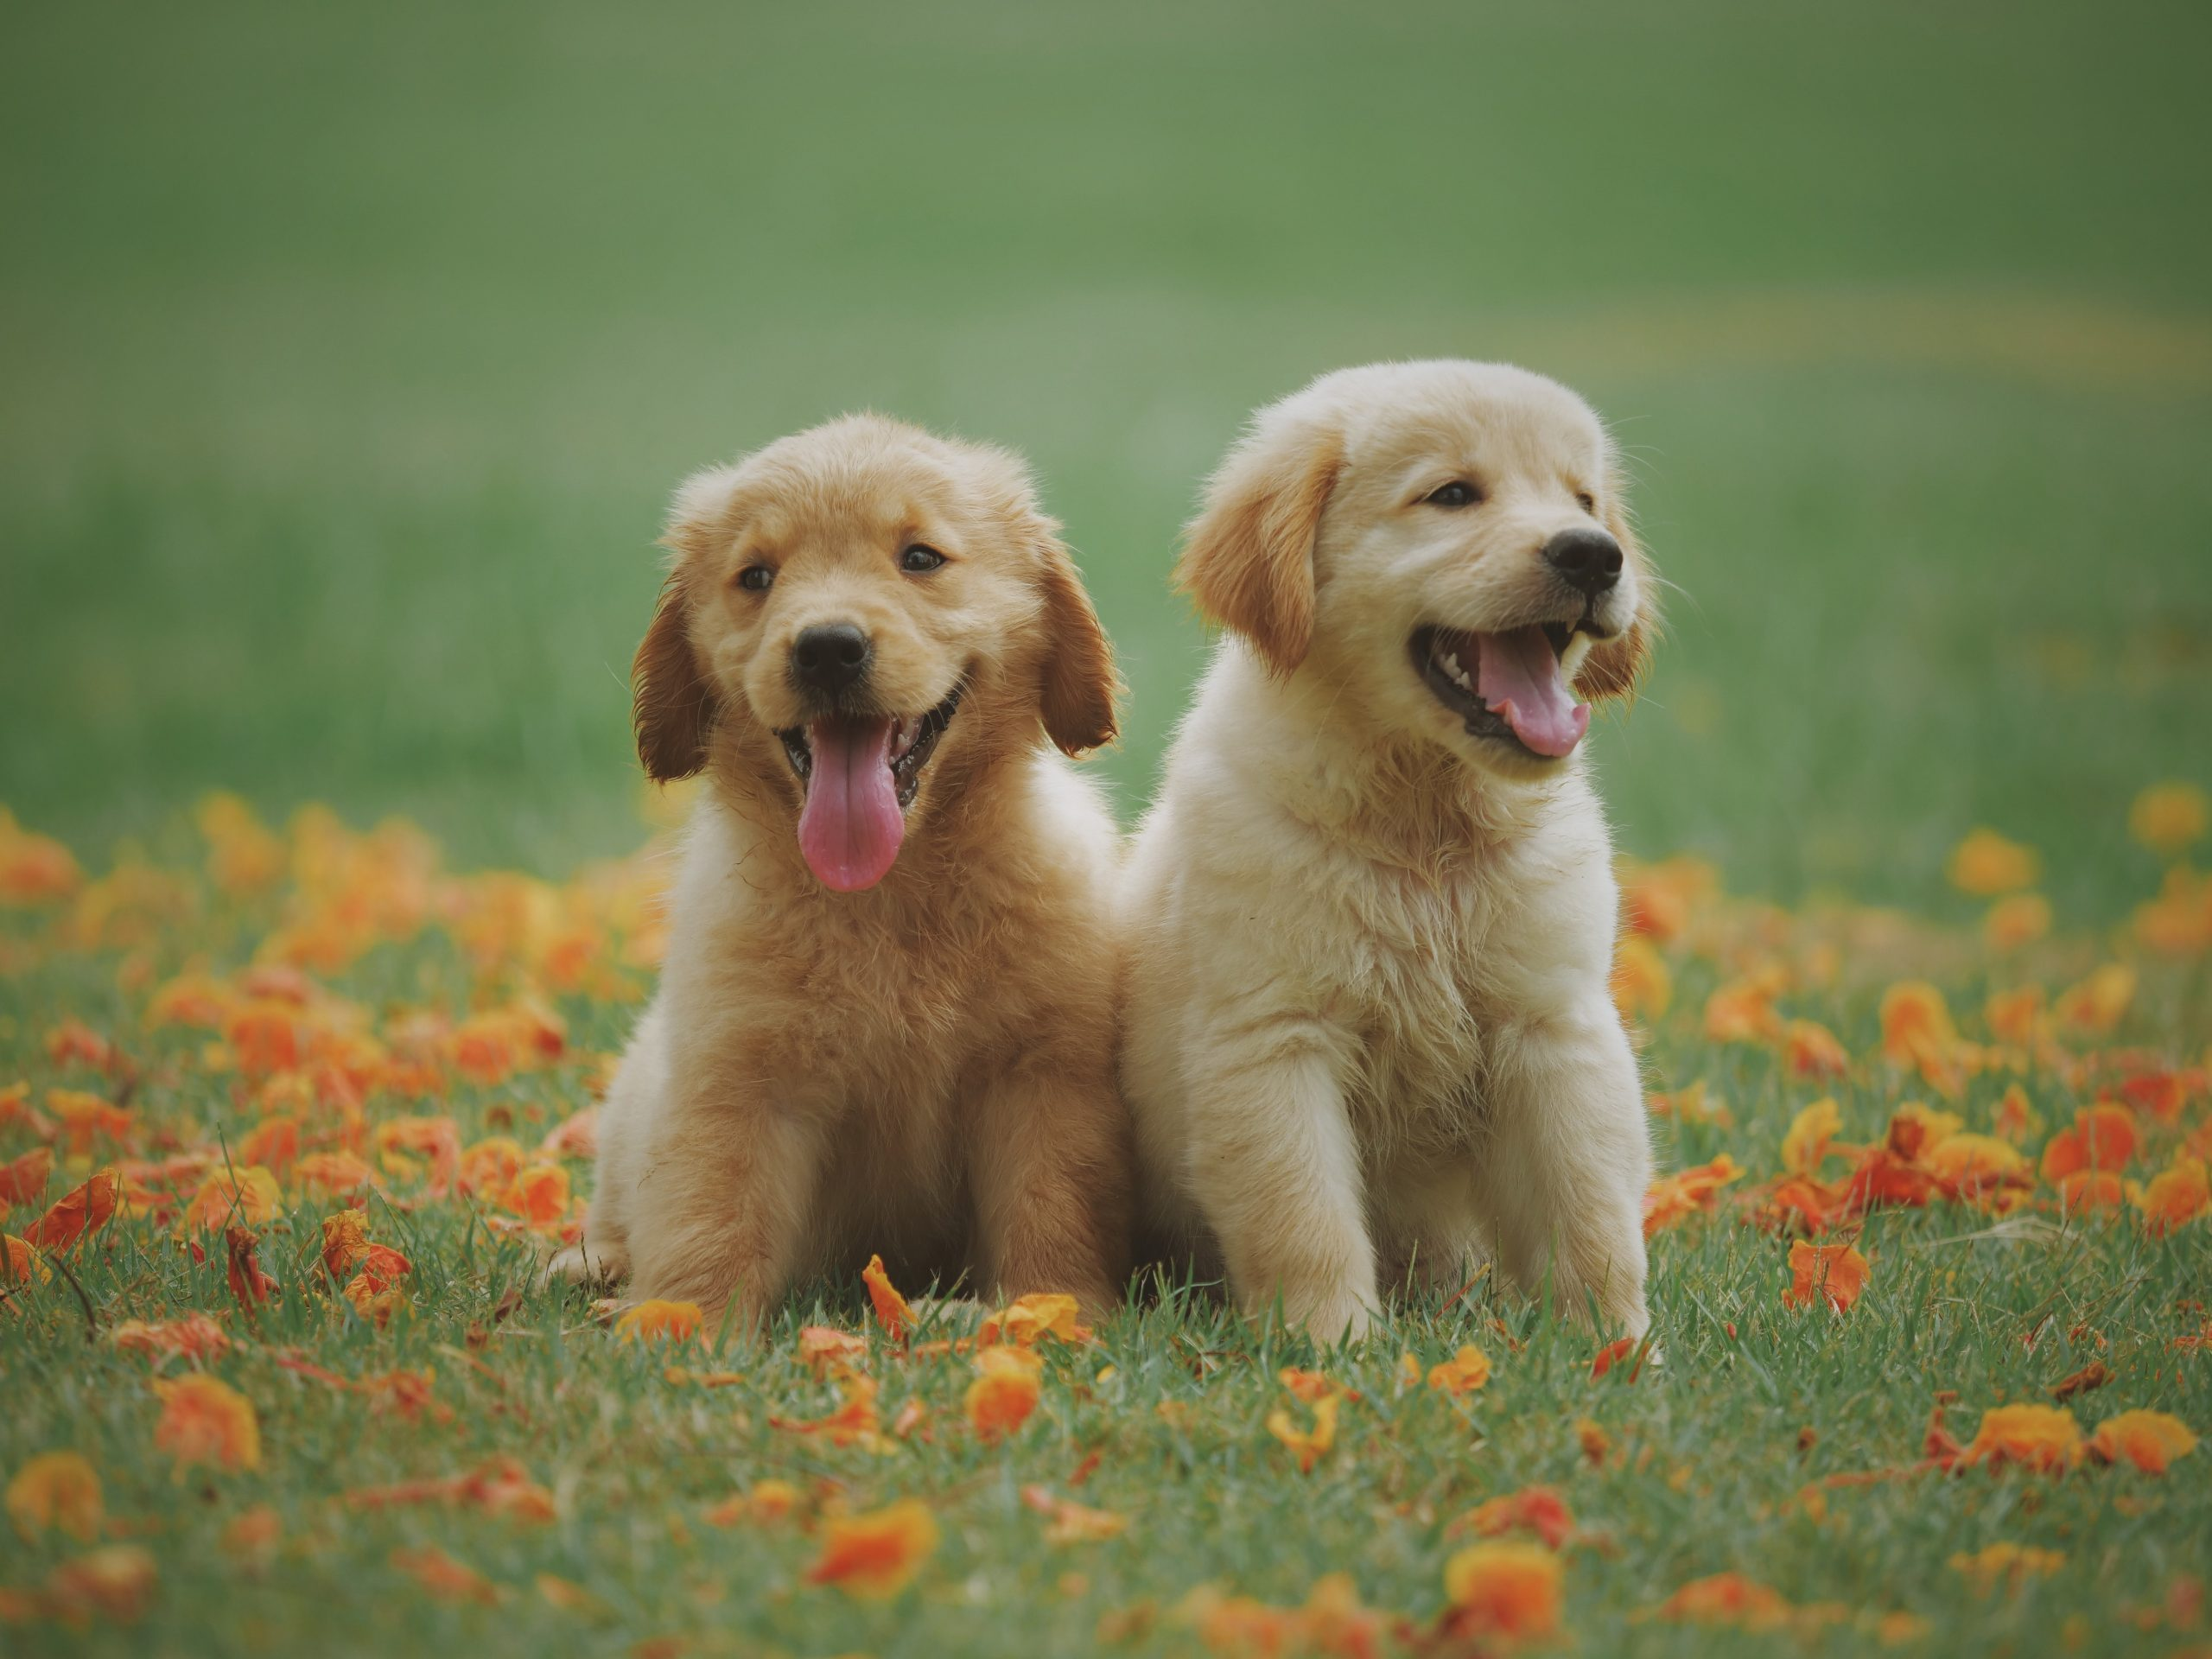 2 yellow puppies sitting in the grass with orange flowers